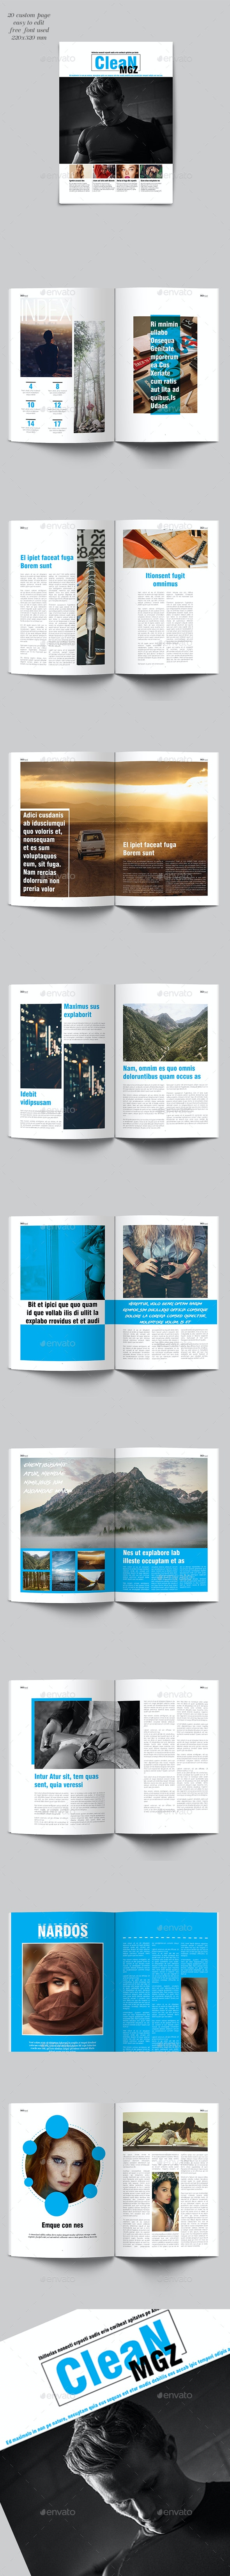 Clean Mgz Template - Magazines Print Templates